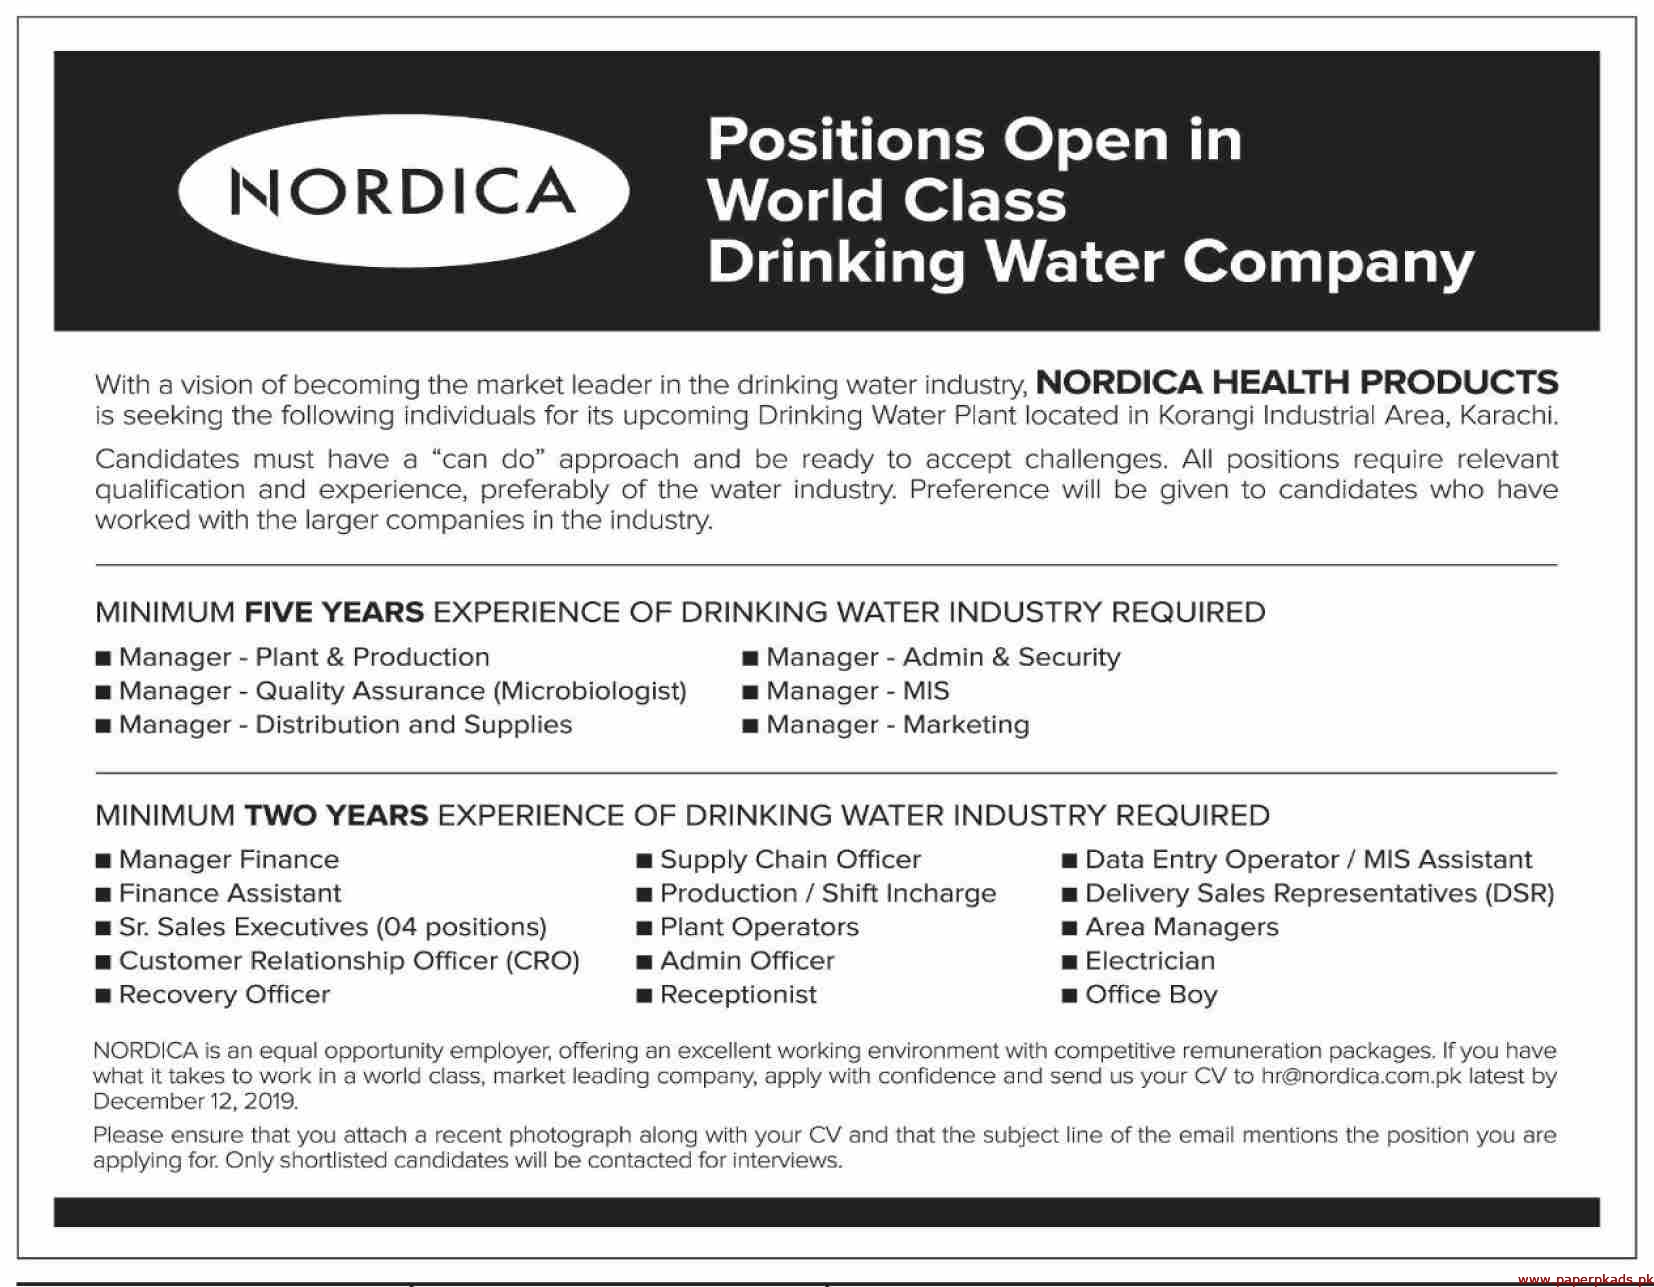 NORDICA Health Products Jobs 2019 Latest